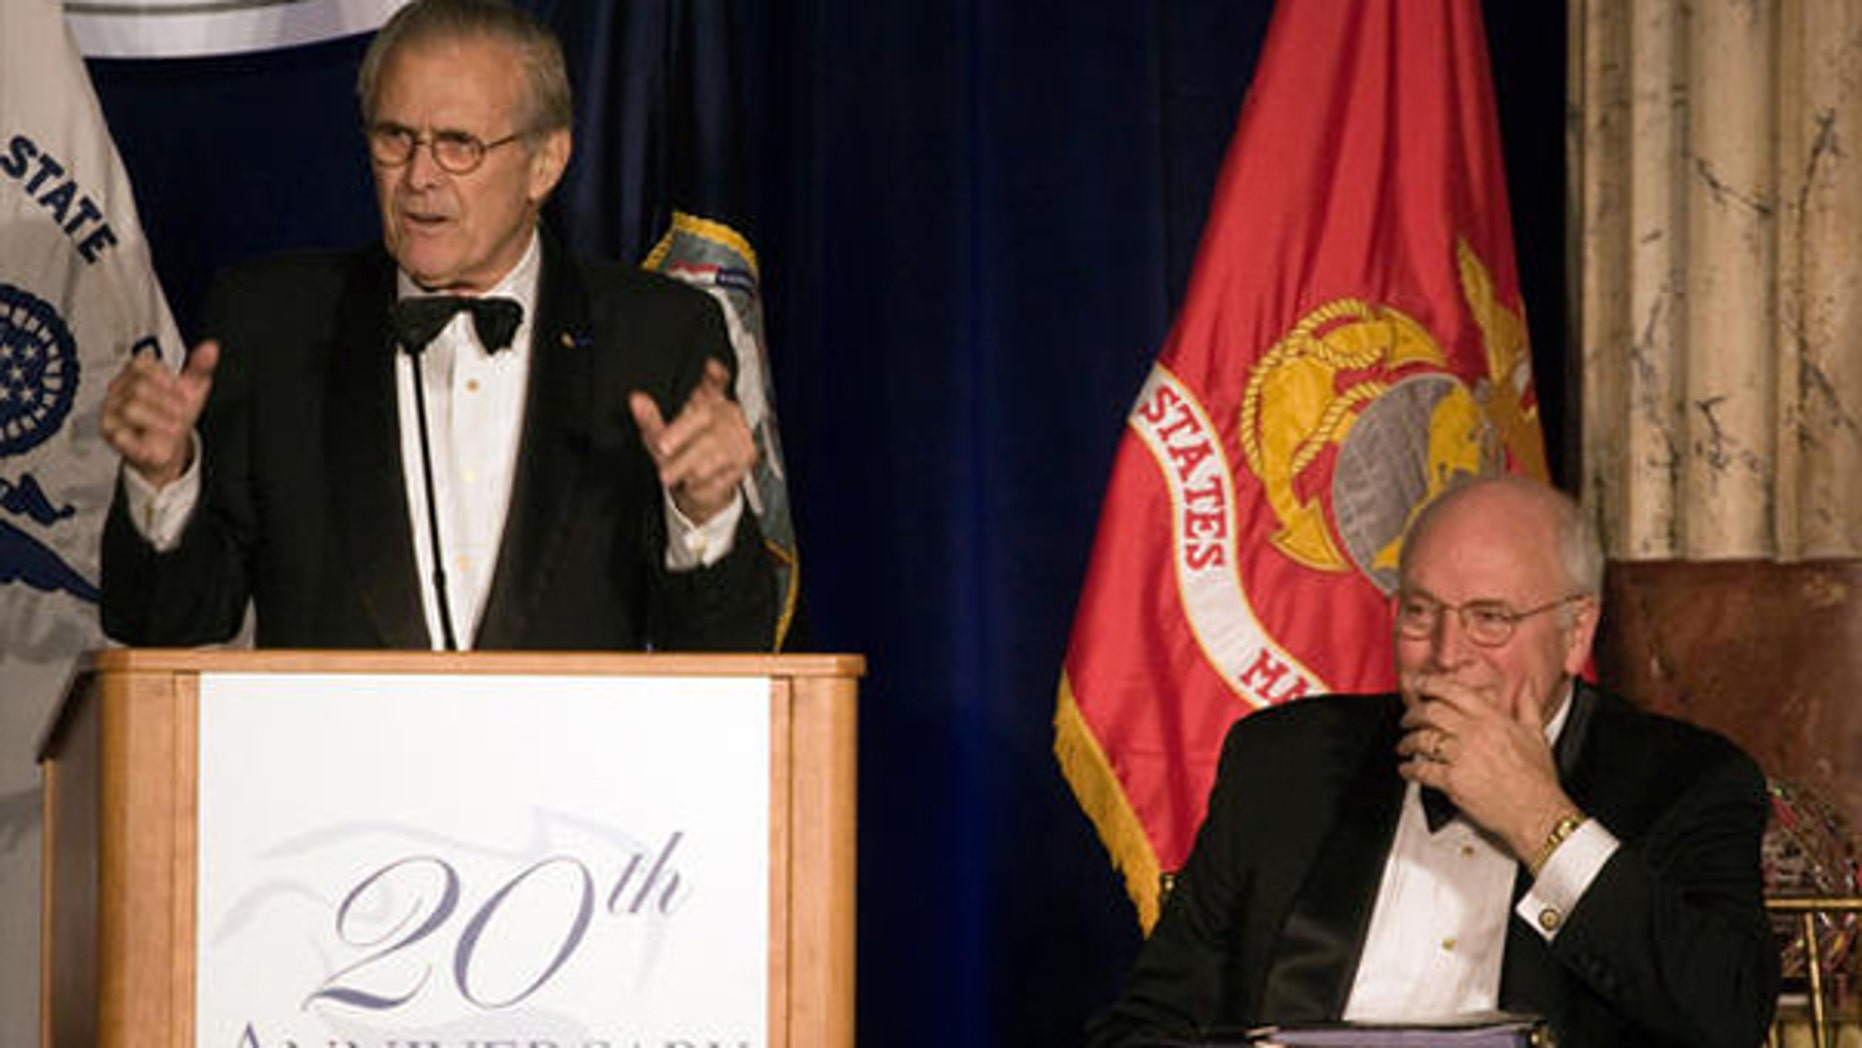 Oct. 21, 2009: Former Defense Secretary Donald Rumsfeld speaks as former Vice President Dick Cheney listens at the Center For Security Policy dinner in Washington, D.C. (AP Photo)